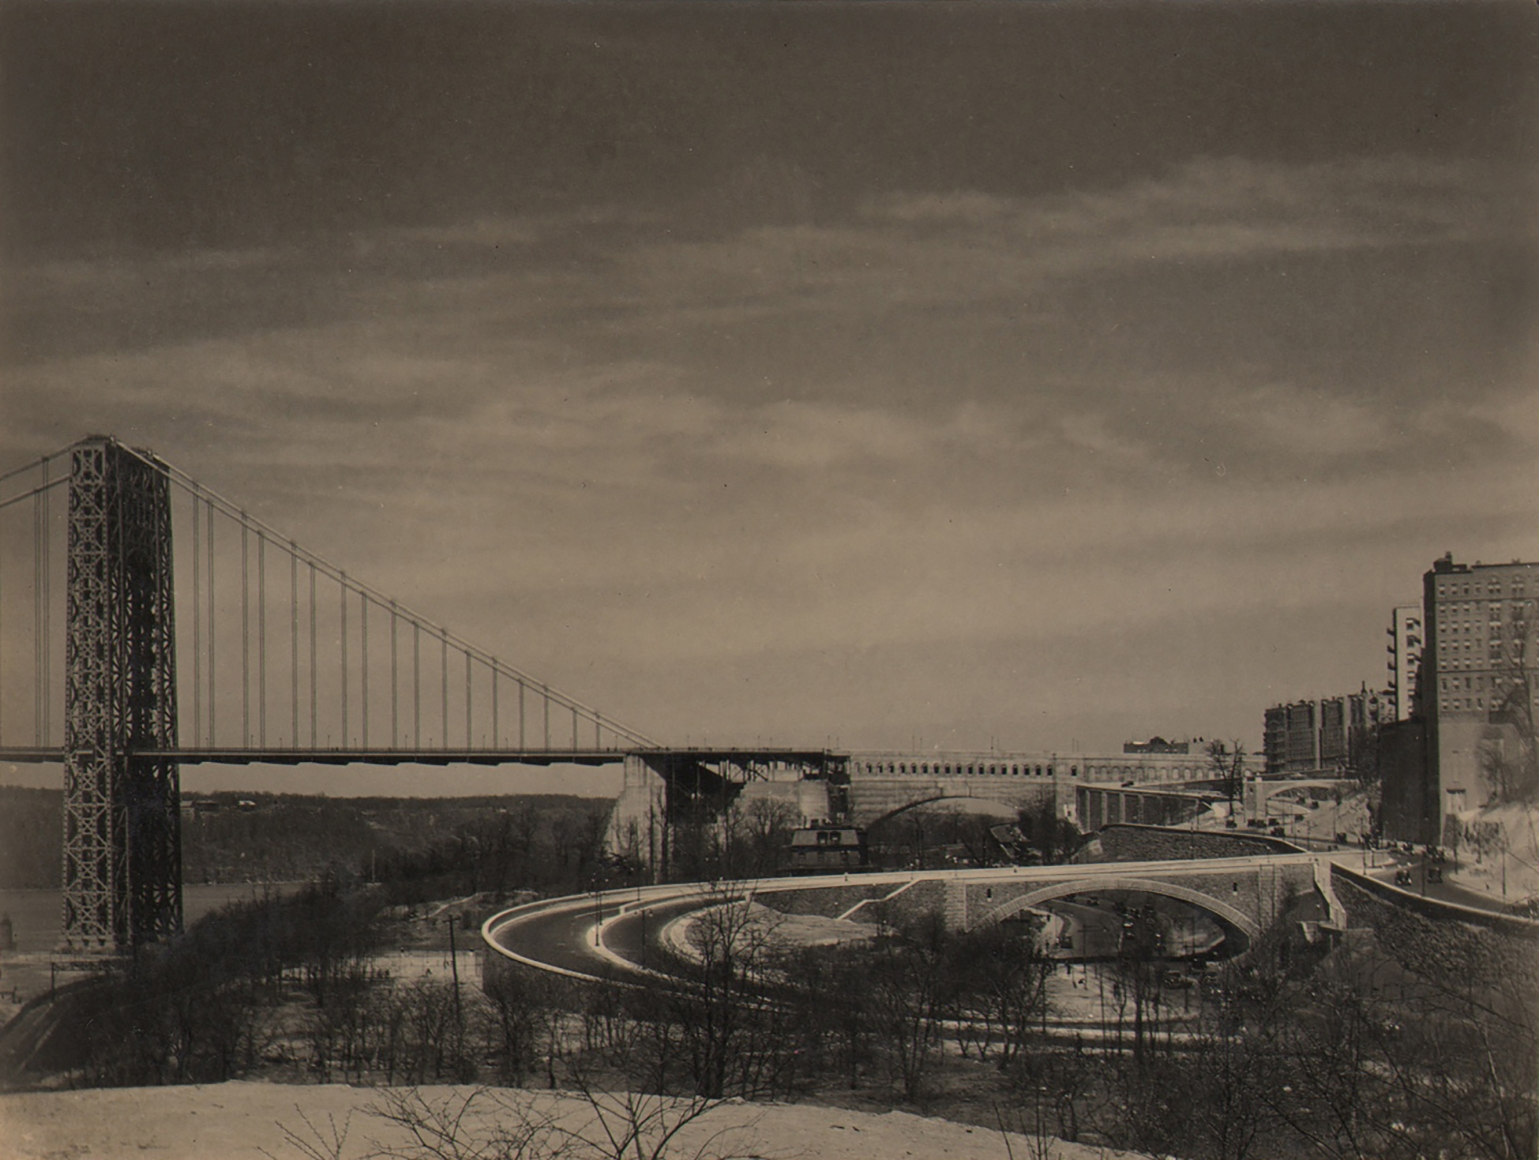 Paul J. Woolf, George Washington Bridge, c. 1933. Cityscape with bridge on center left of the frame. Cloudy sky above. A few buildings are visible on the far right.